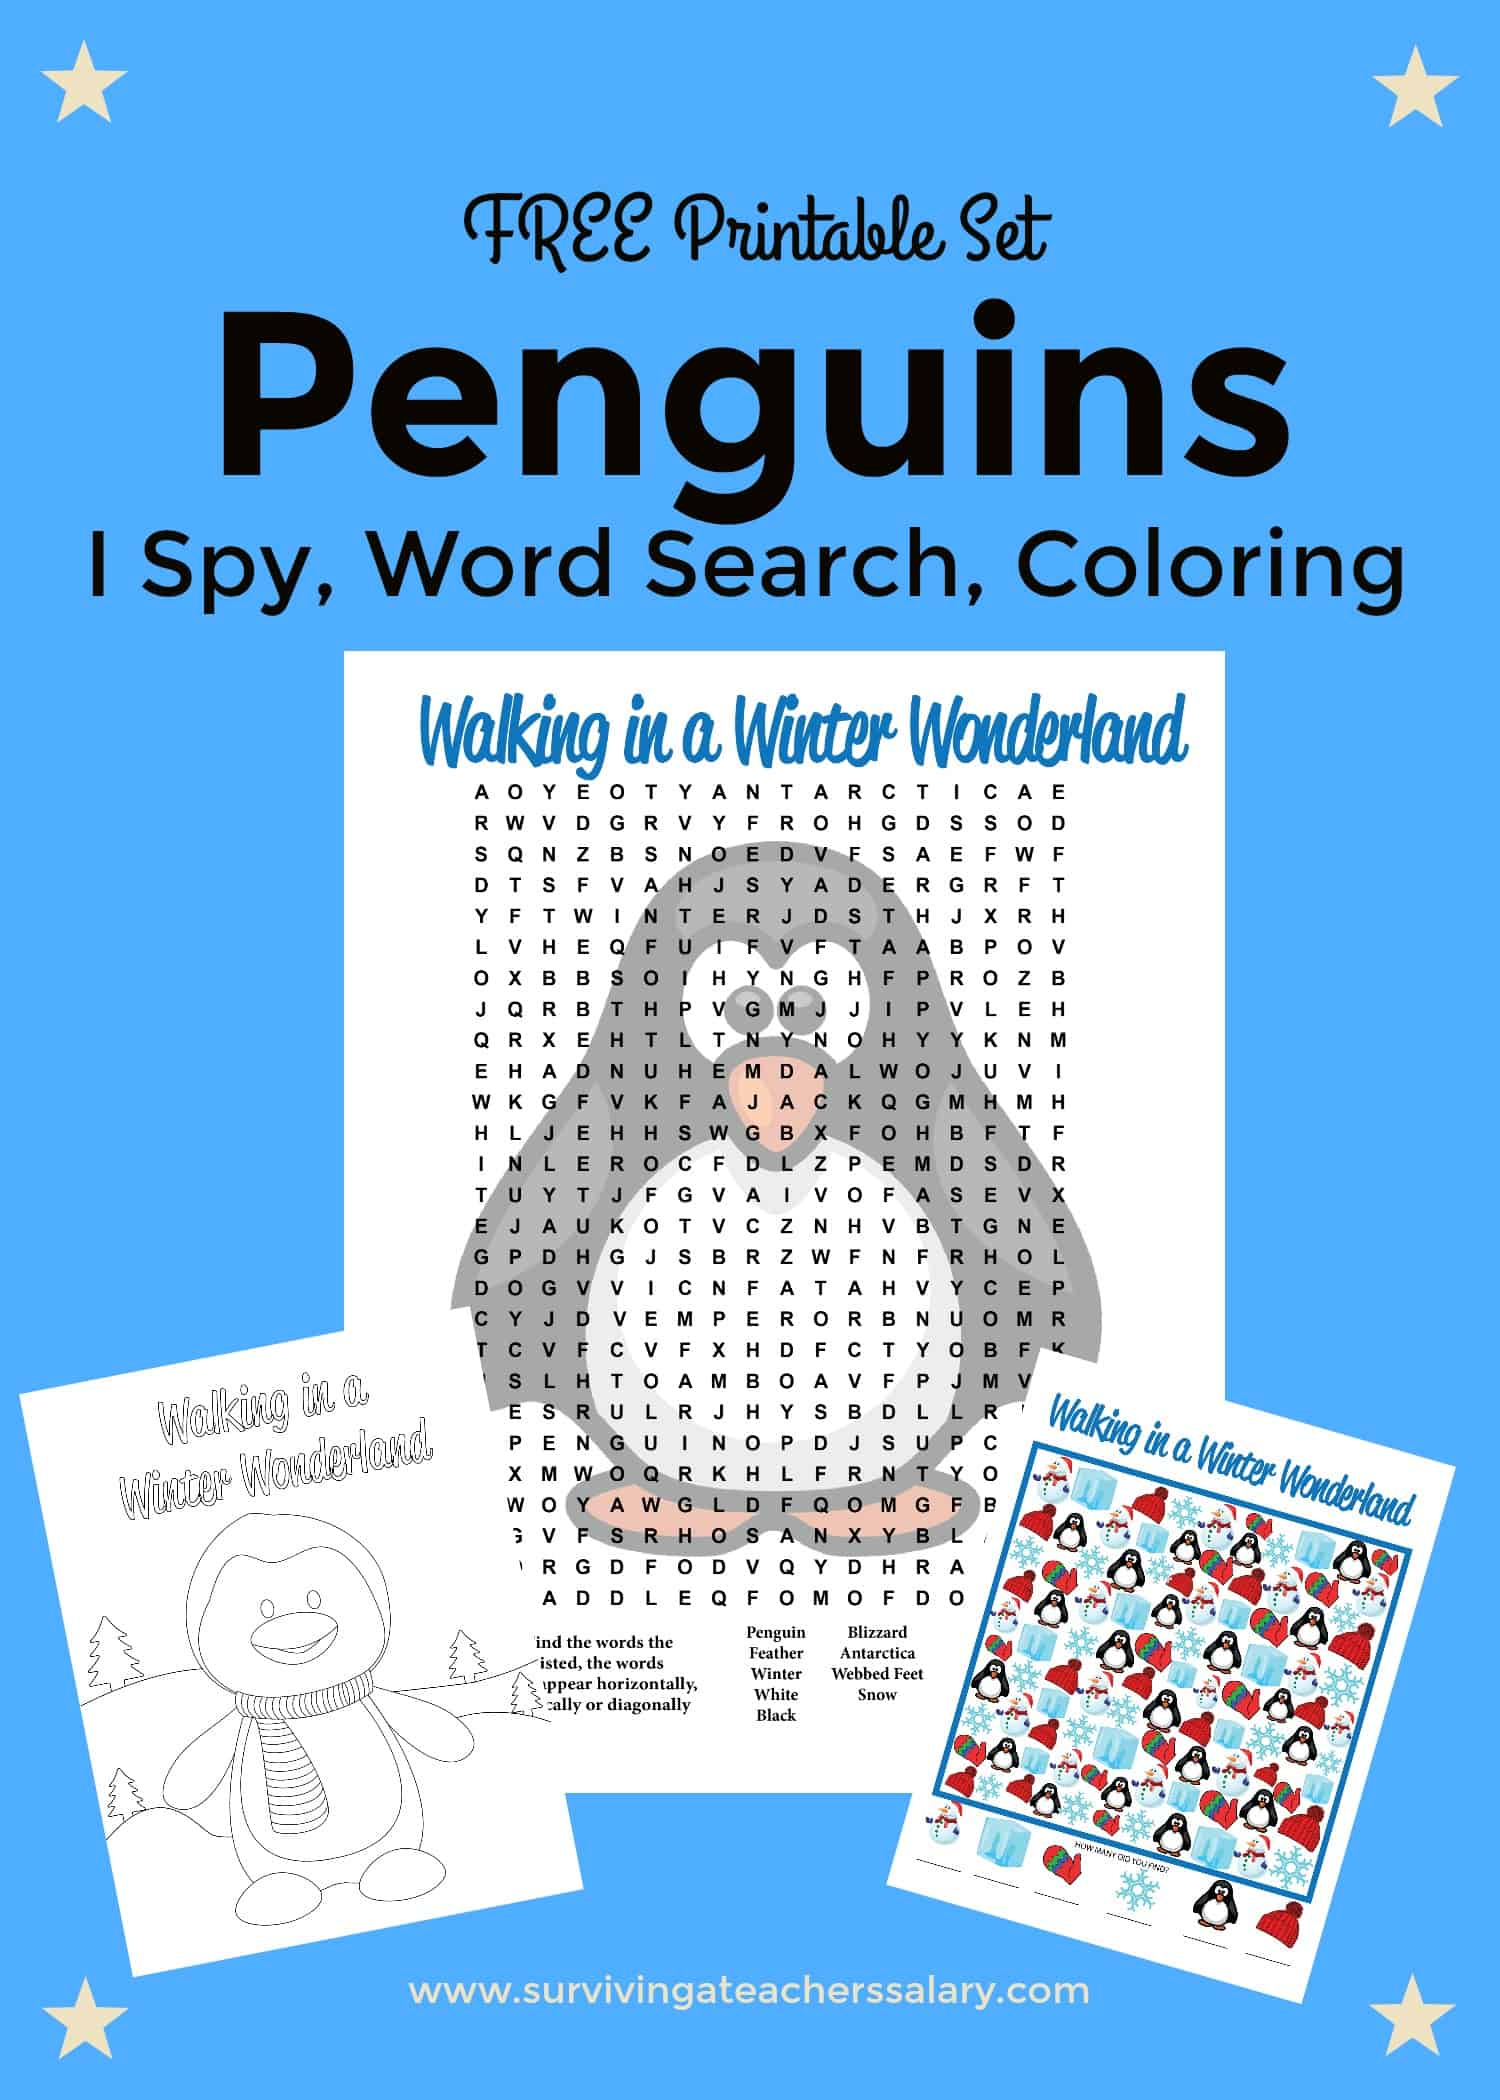 photograph regarding I Spy Printable Worksheets identify Totally free Printable Penguins Worksheets: Coloring Sheet, Phrase